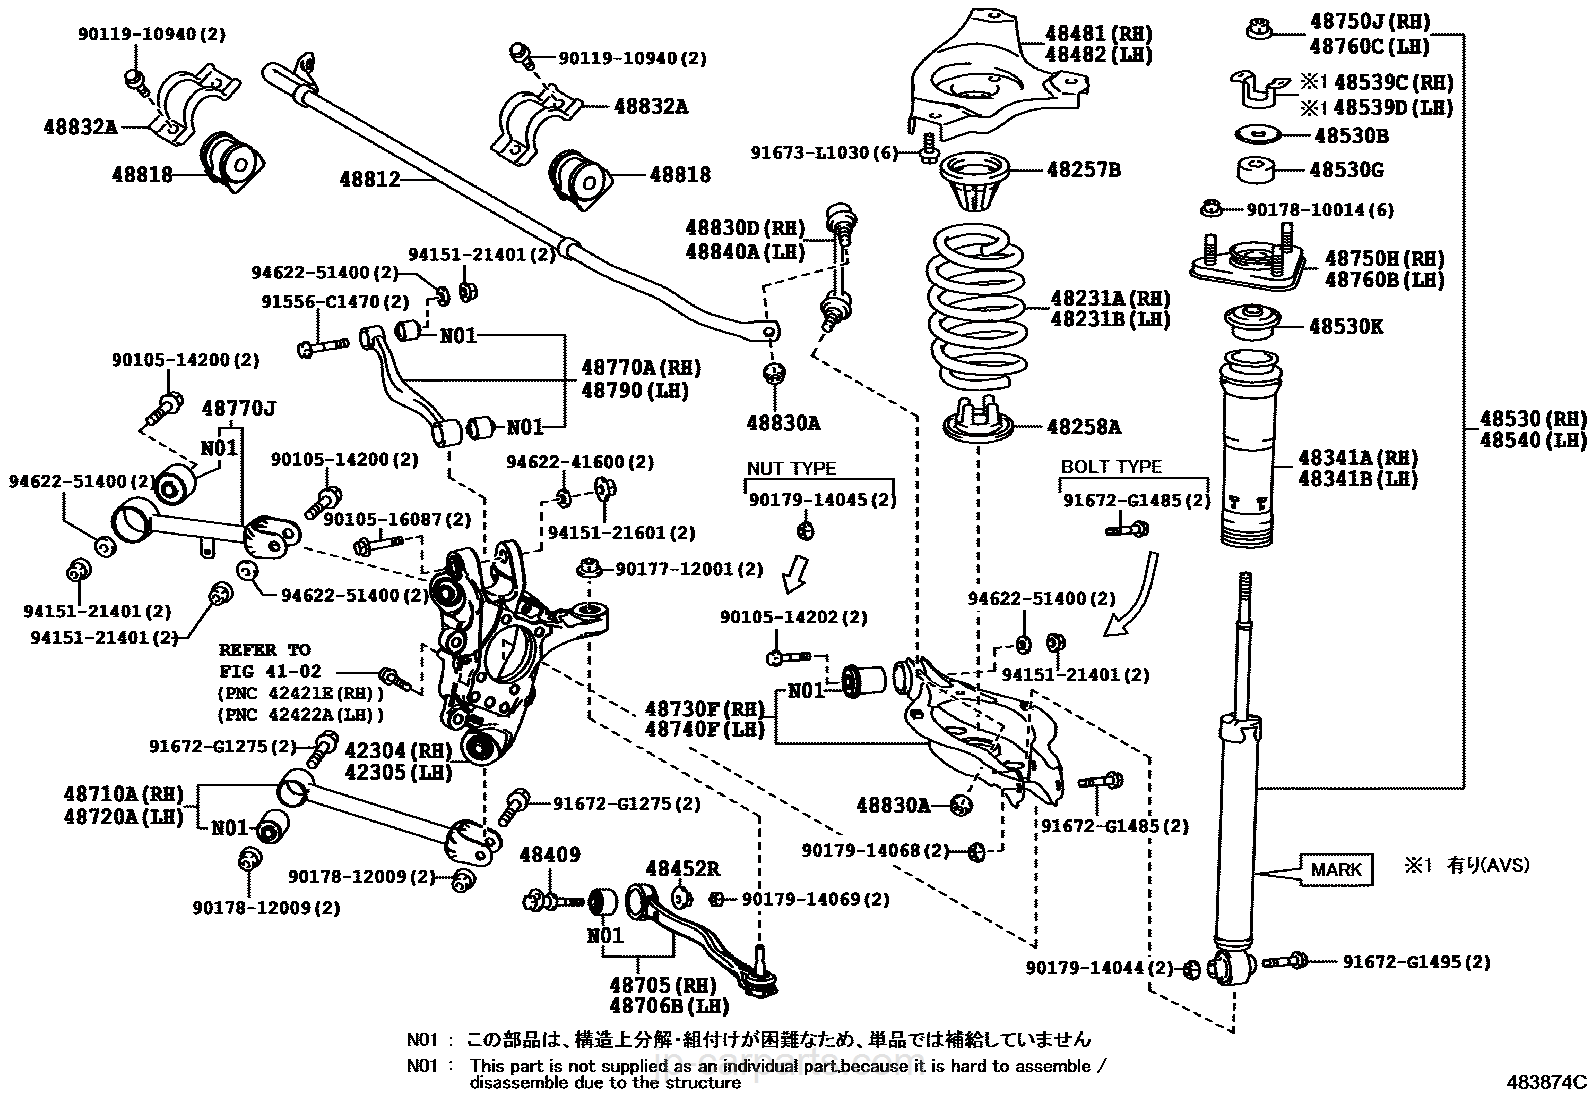 Exelent Parts Of A Car Engine Labeled Mold - Electrical Diagram ...